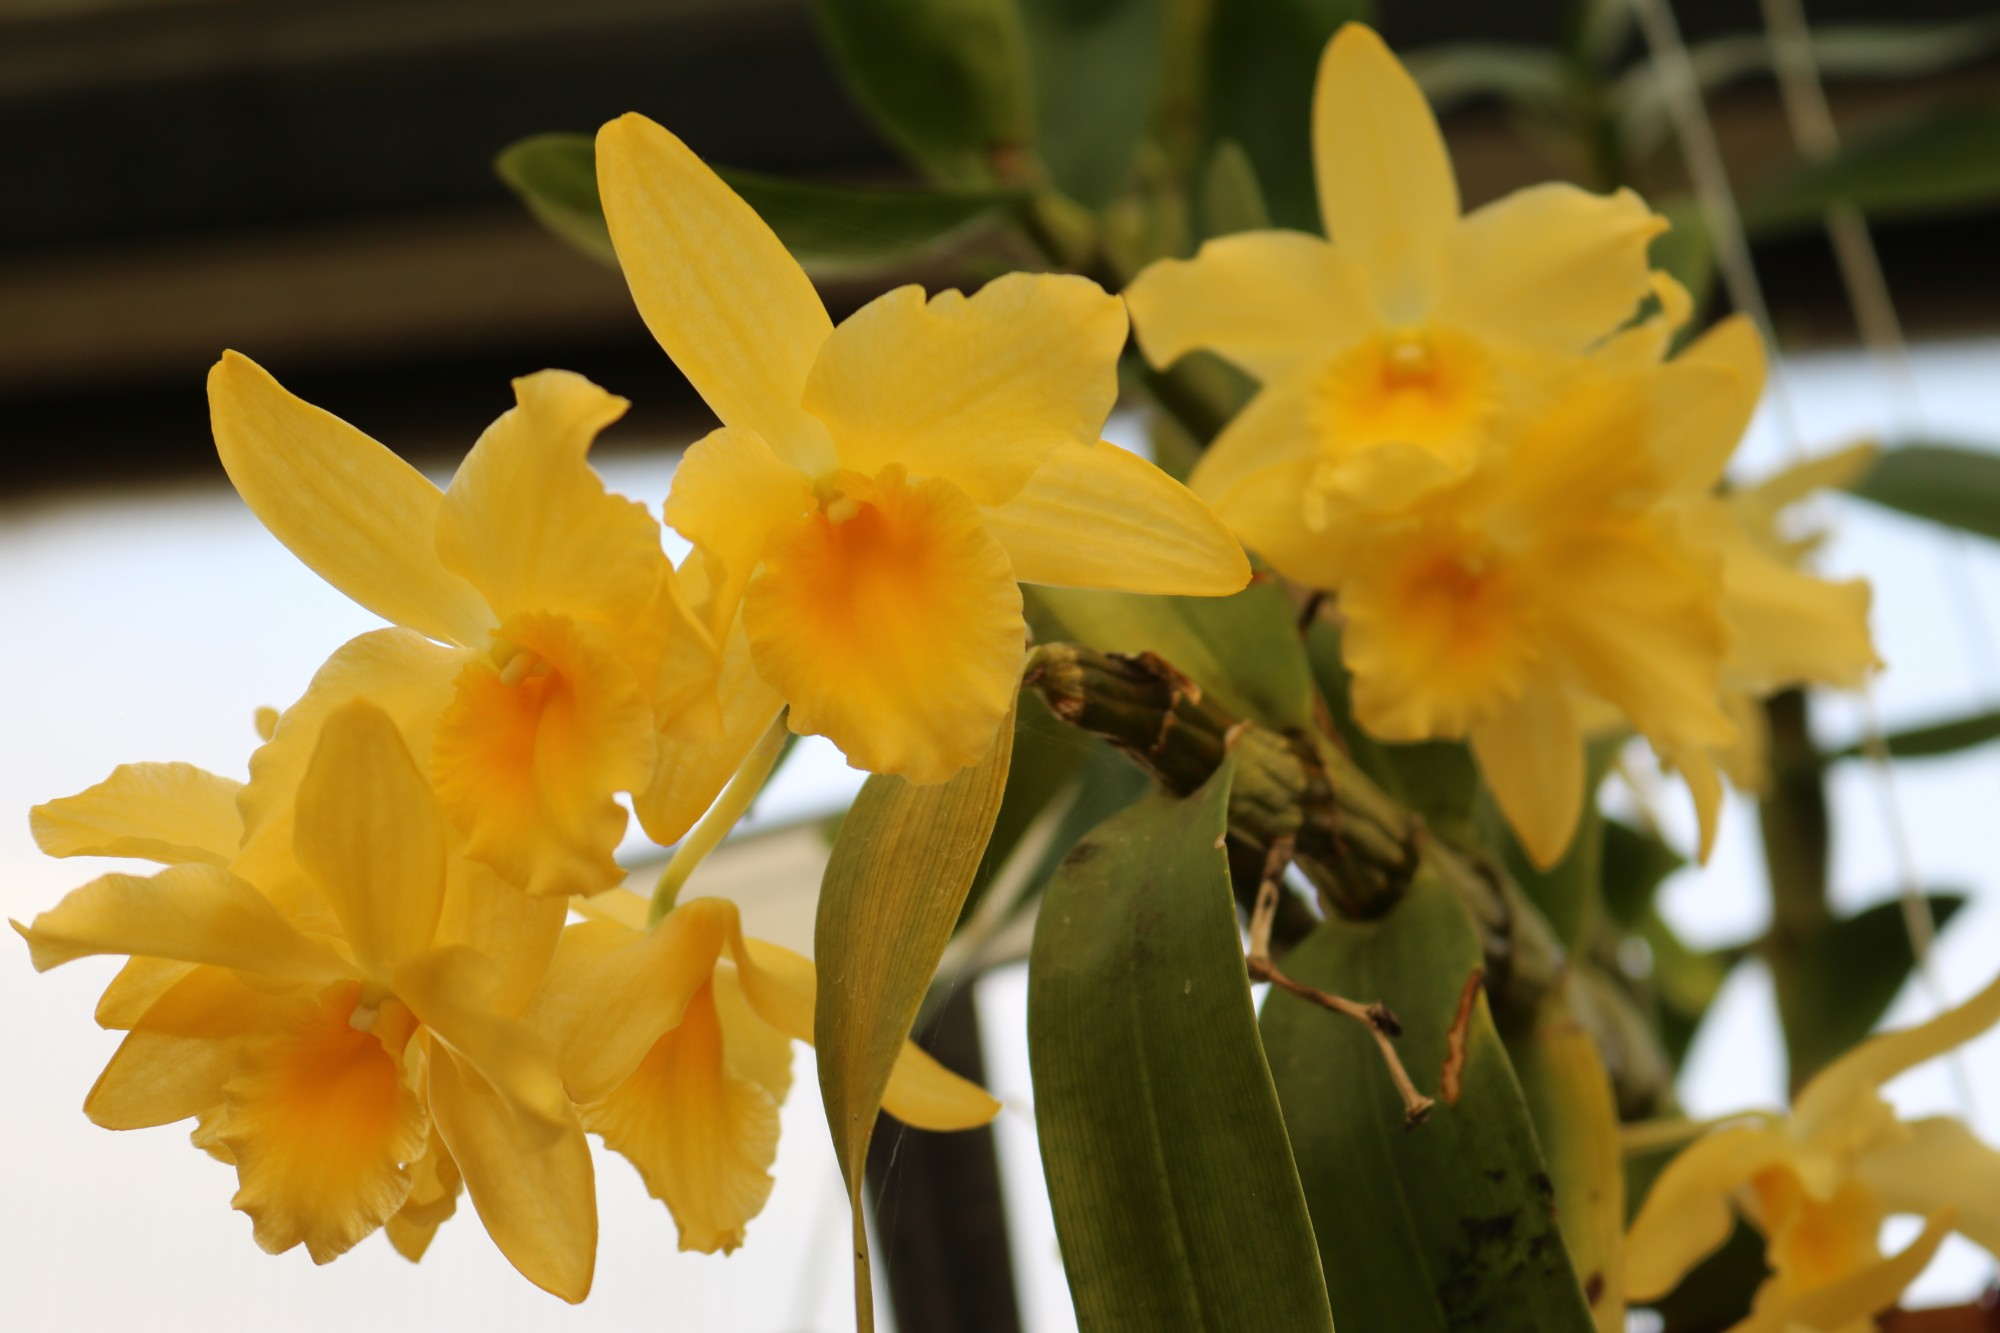 Dendrobium Yellow Song 'Canary', Gardeners Show House. Photo by Leslie Hunter.